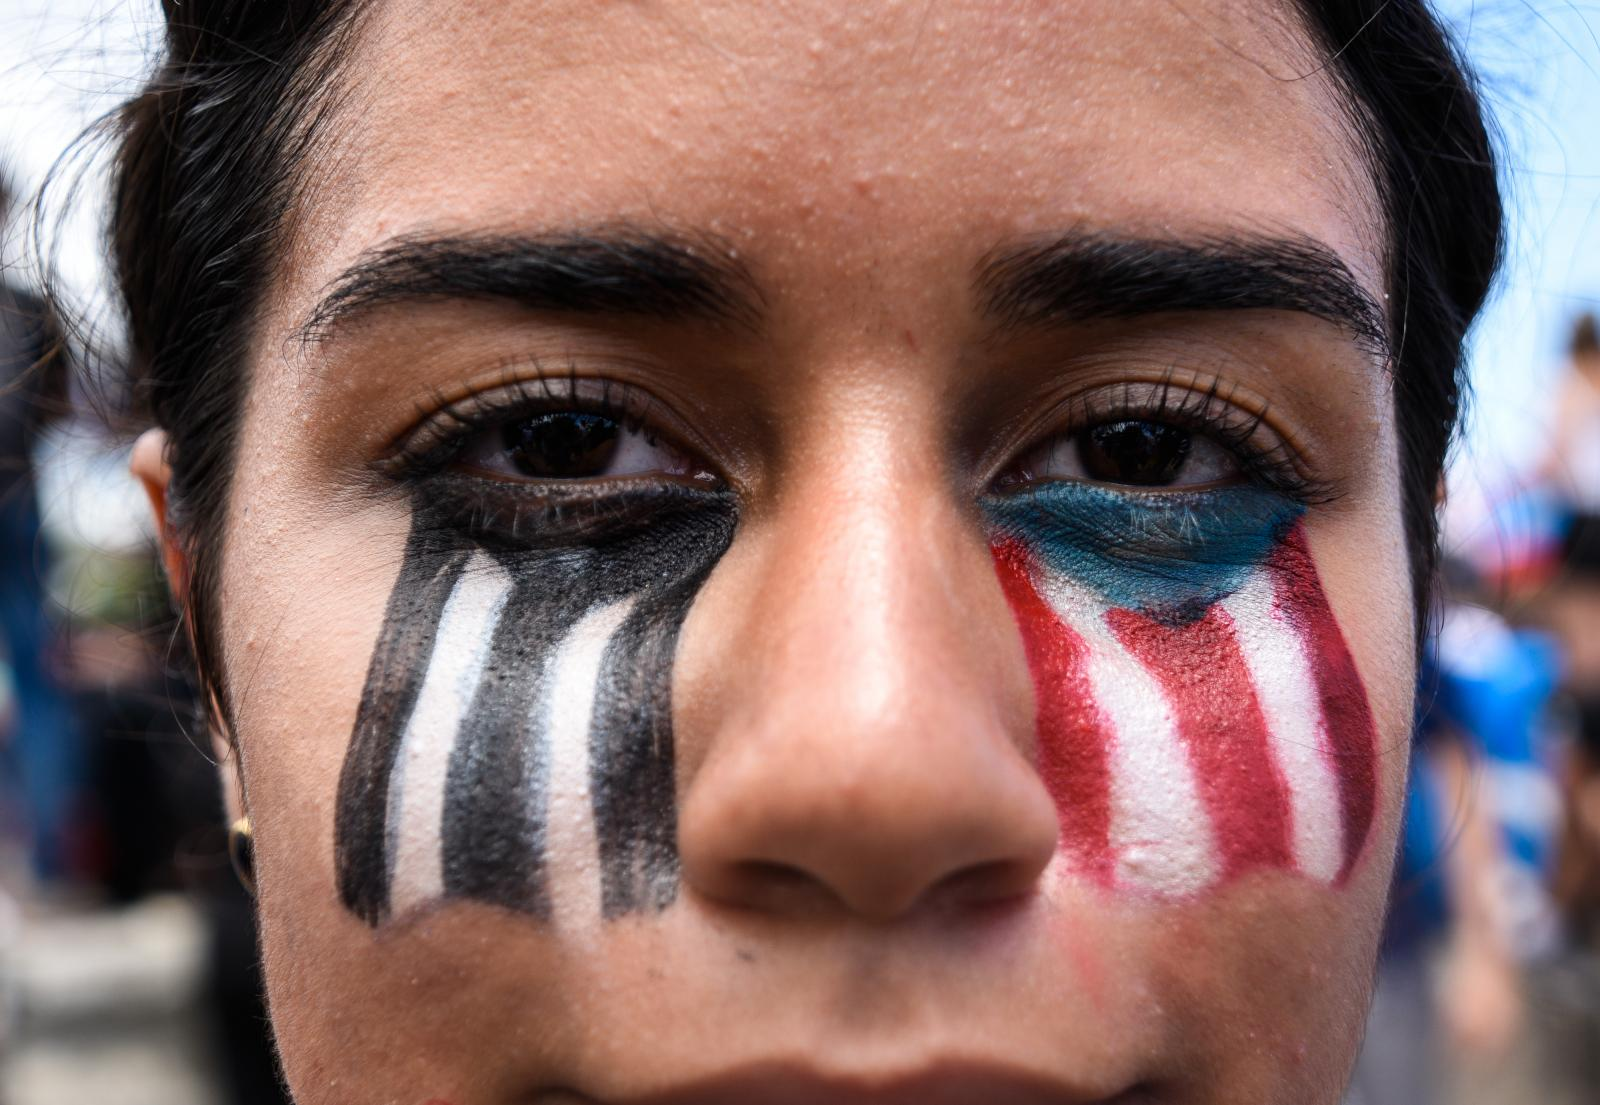 Demonstrators use makeup as a means of resistance during the summer 2019 protests.